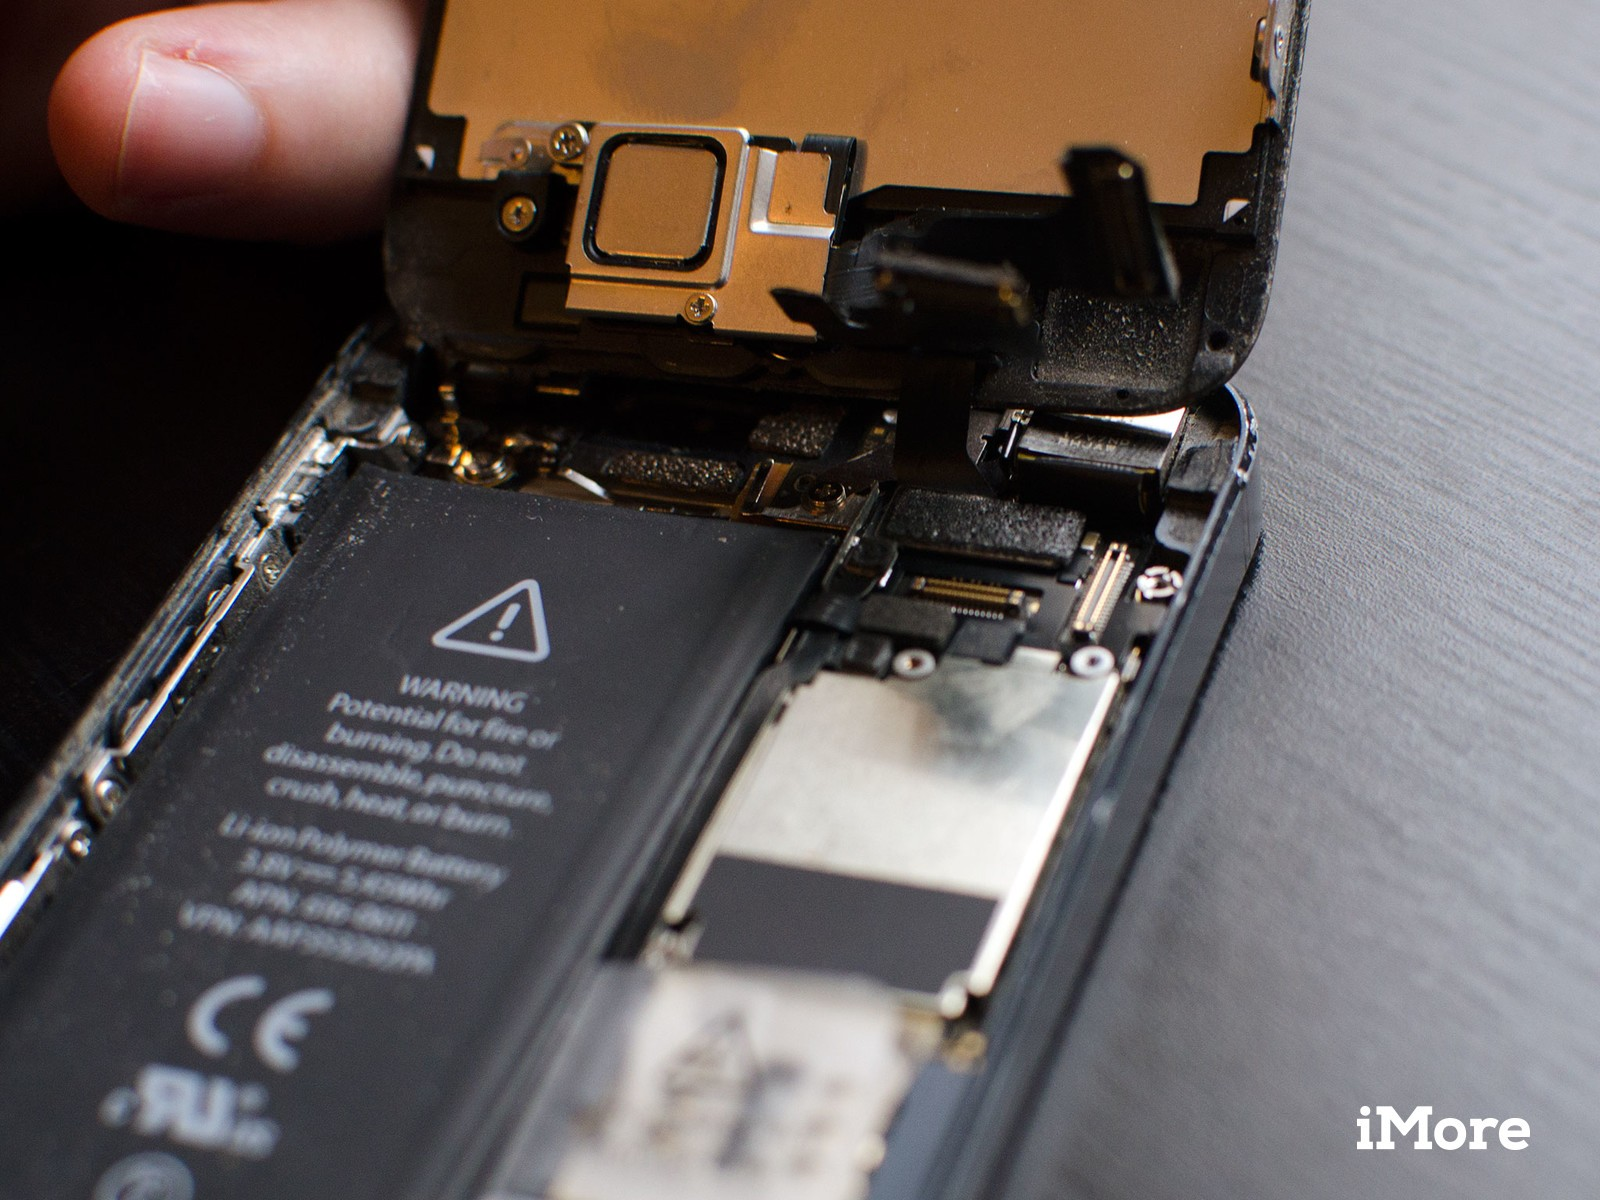 How to replace a broken headphone jack in an iPhone 5